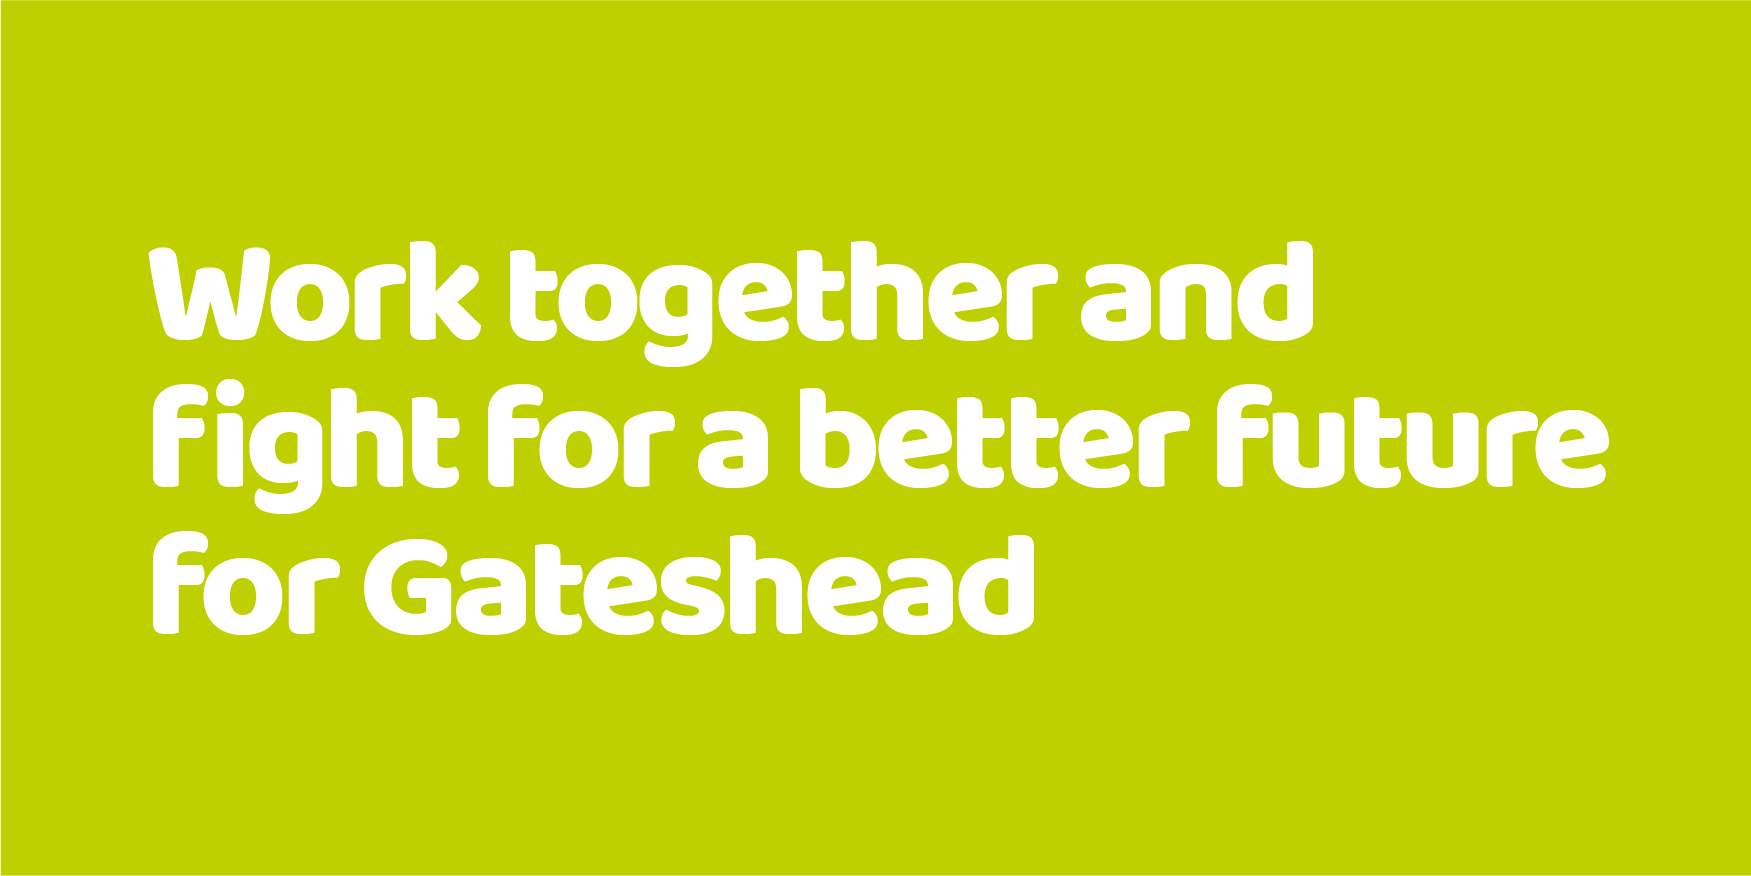 Work together and fight for a better future for Gateshead